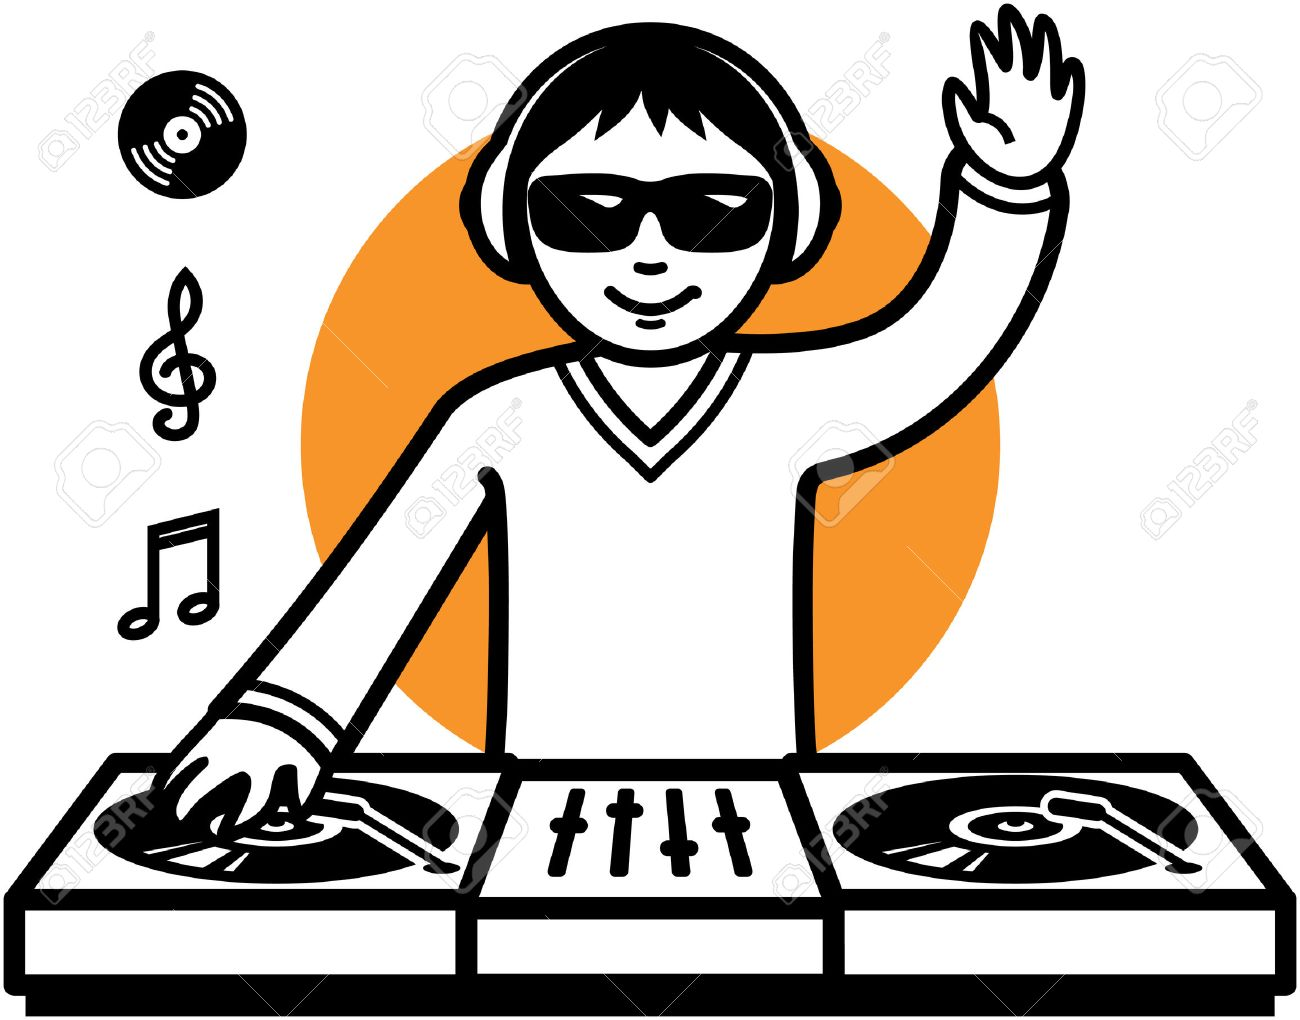 Party DJ at turntable illustration.